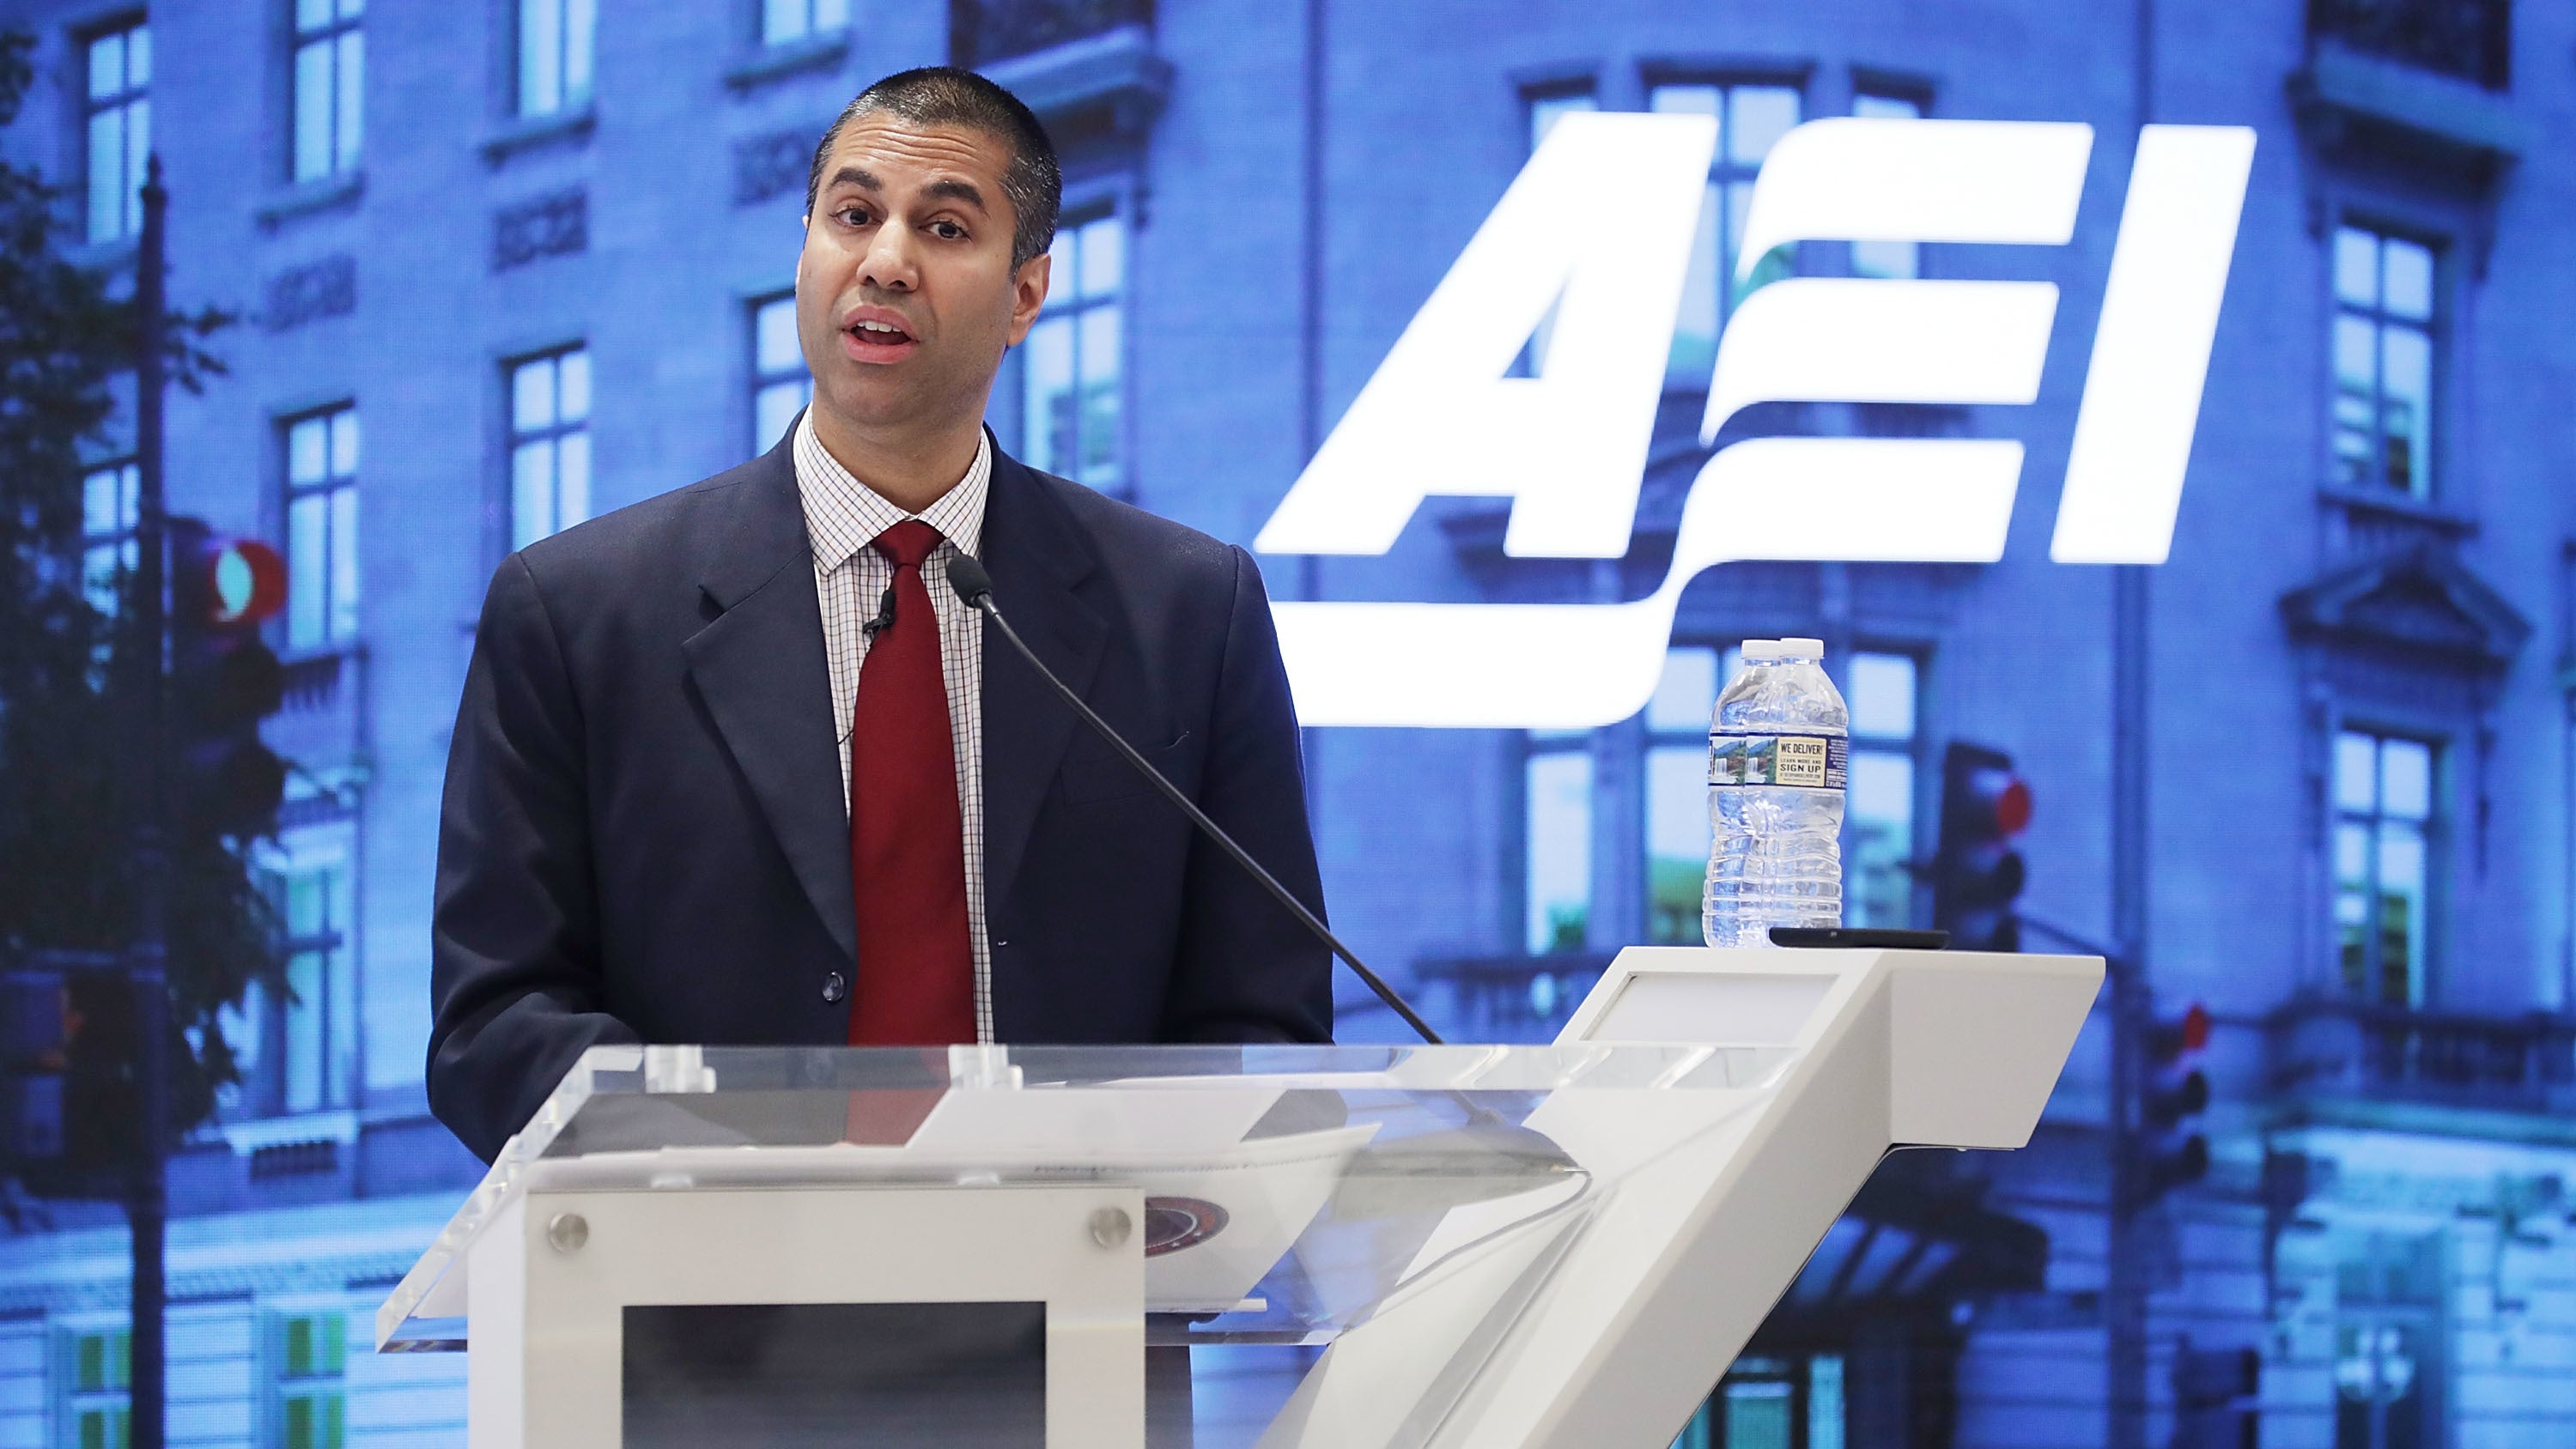 FCC Chair Ajit Pai Wants To Cap A Program To Help Poor People Afford Phones And Internet